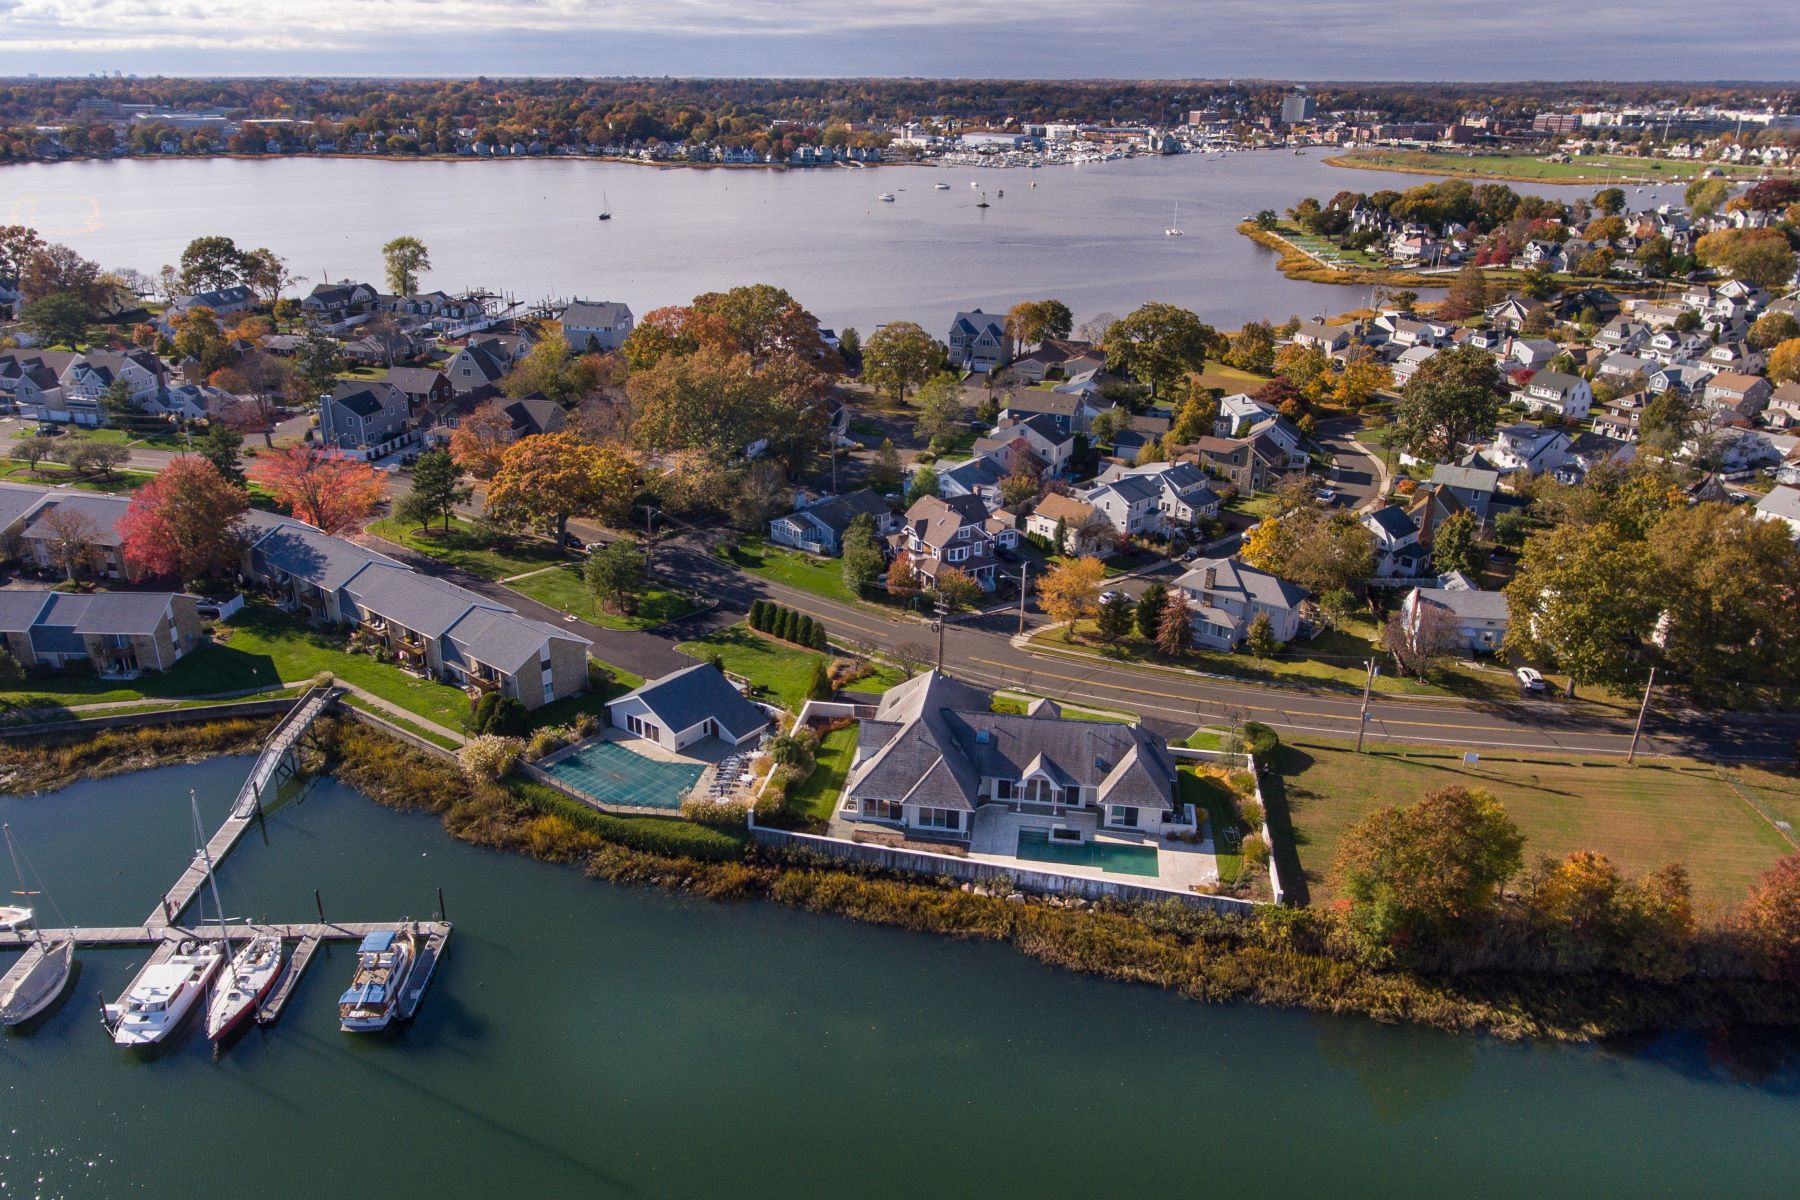 Single Family Homes for Sale at Enjoy Spectacular Waterfront Living 161-165 Gregory Boulevard Norwalk, Connecticut 06855 United States